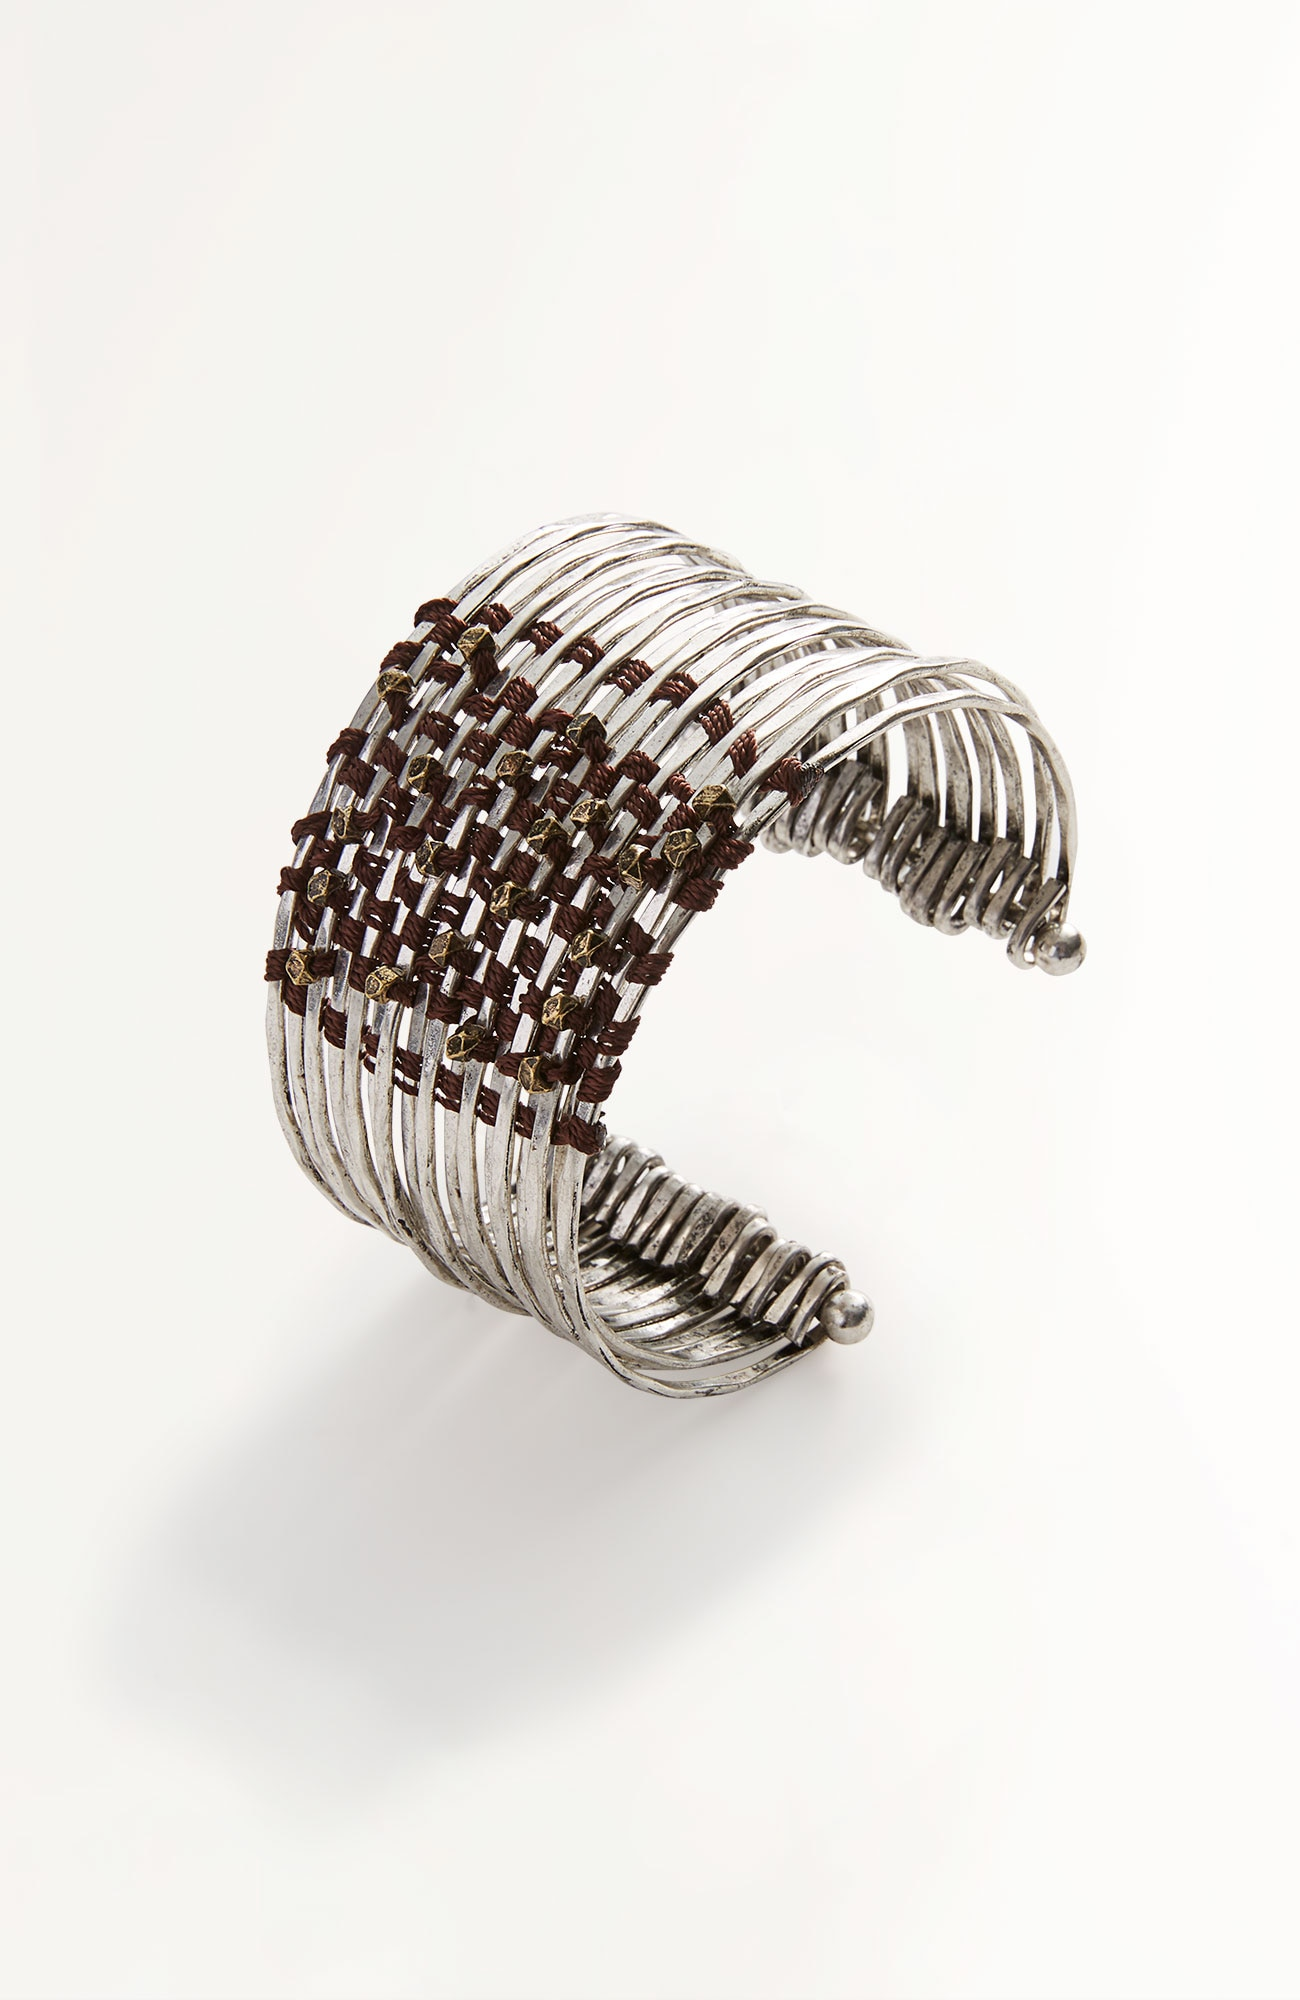 wrapped-metal cuff bracelet